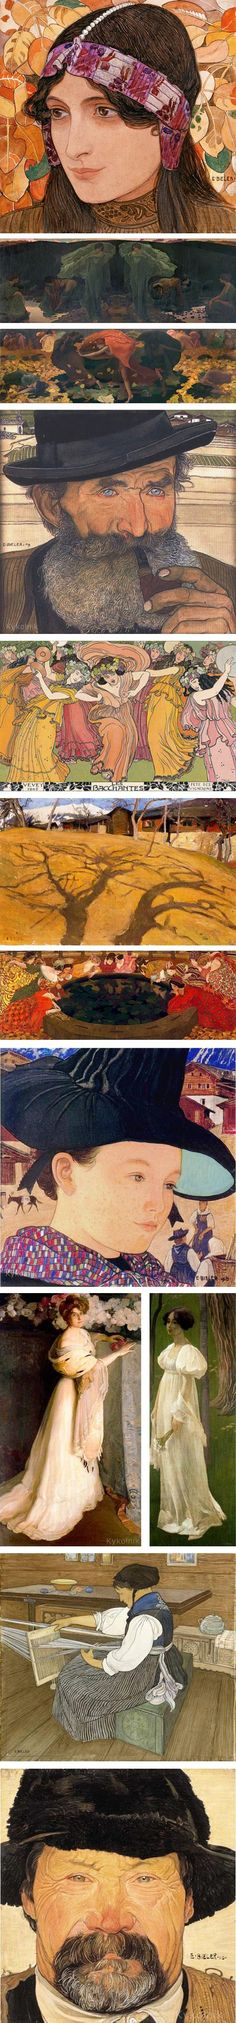 Ernest Biéler was a Swiss artist active in the late 19th and early 20th centuries whose works incorporates elements of Art Nouveau and Symbolism.